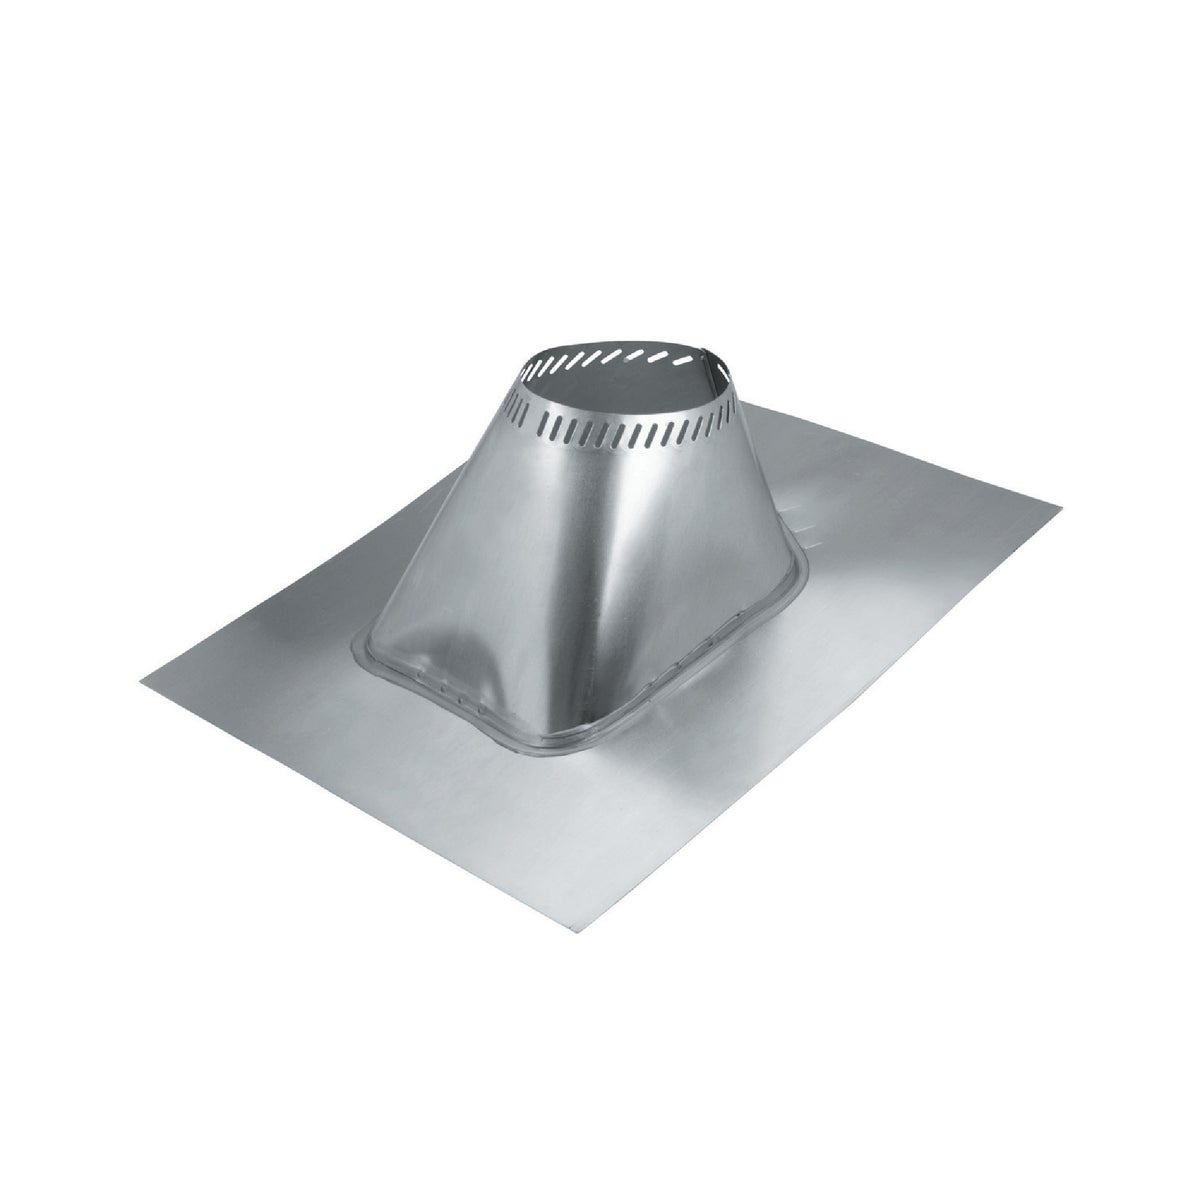 2-6/12 ADJ ROOF FLASHING - 6T-AF6 by Selkirk Corporation